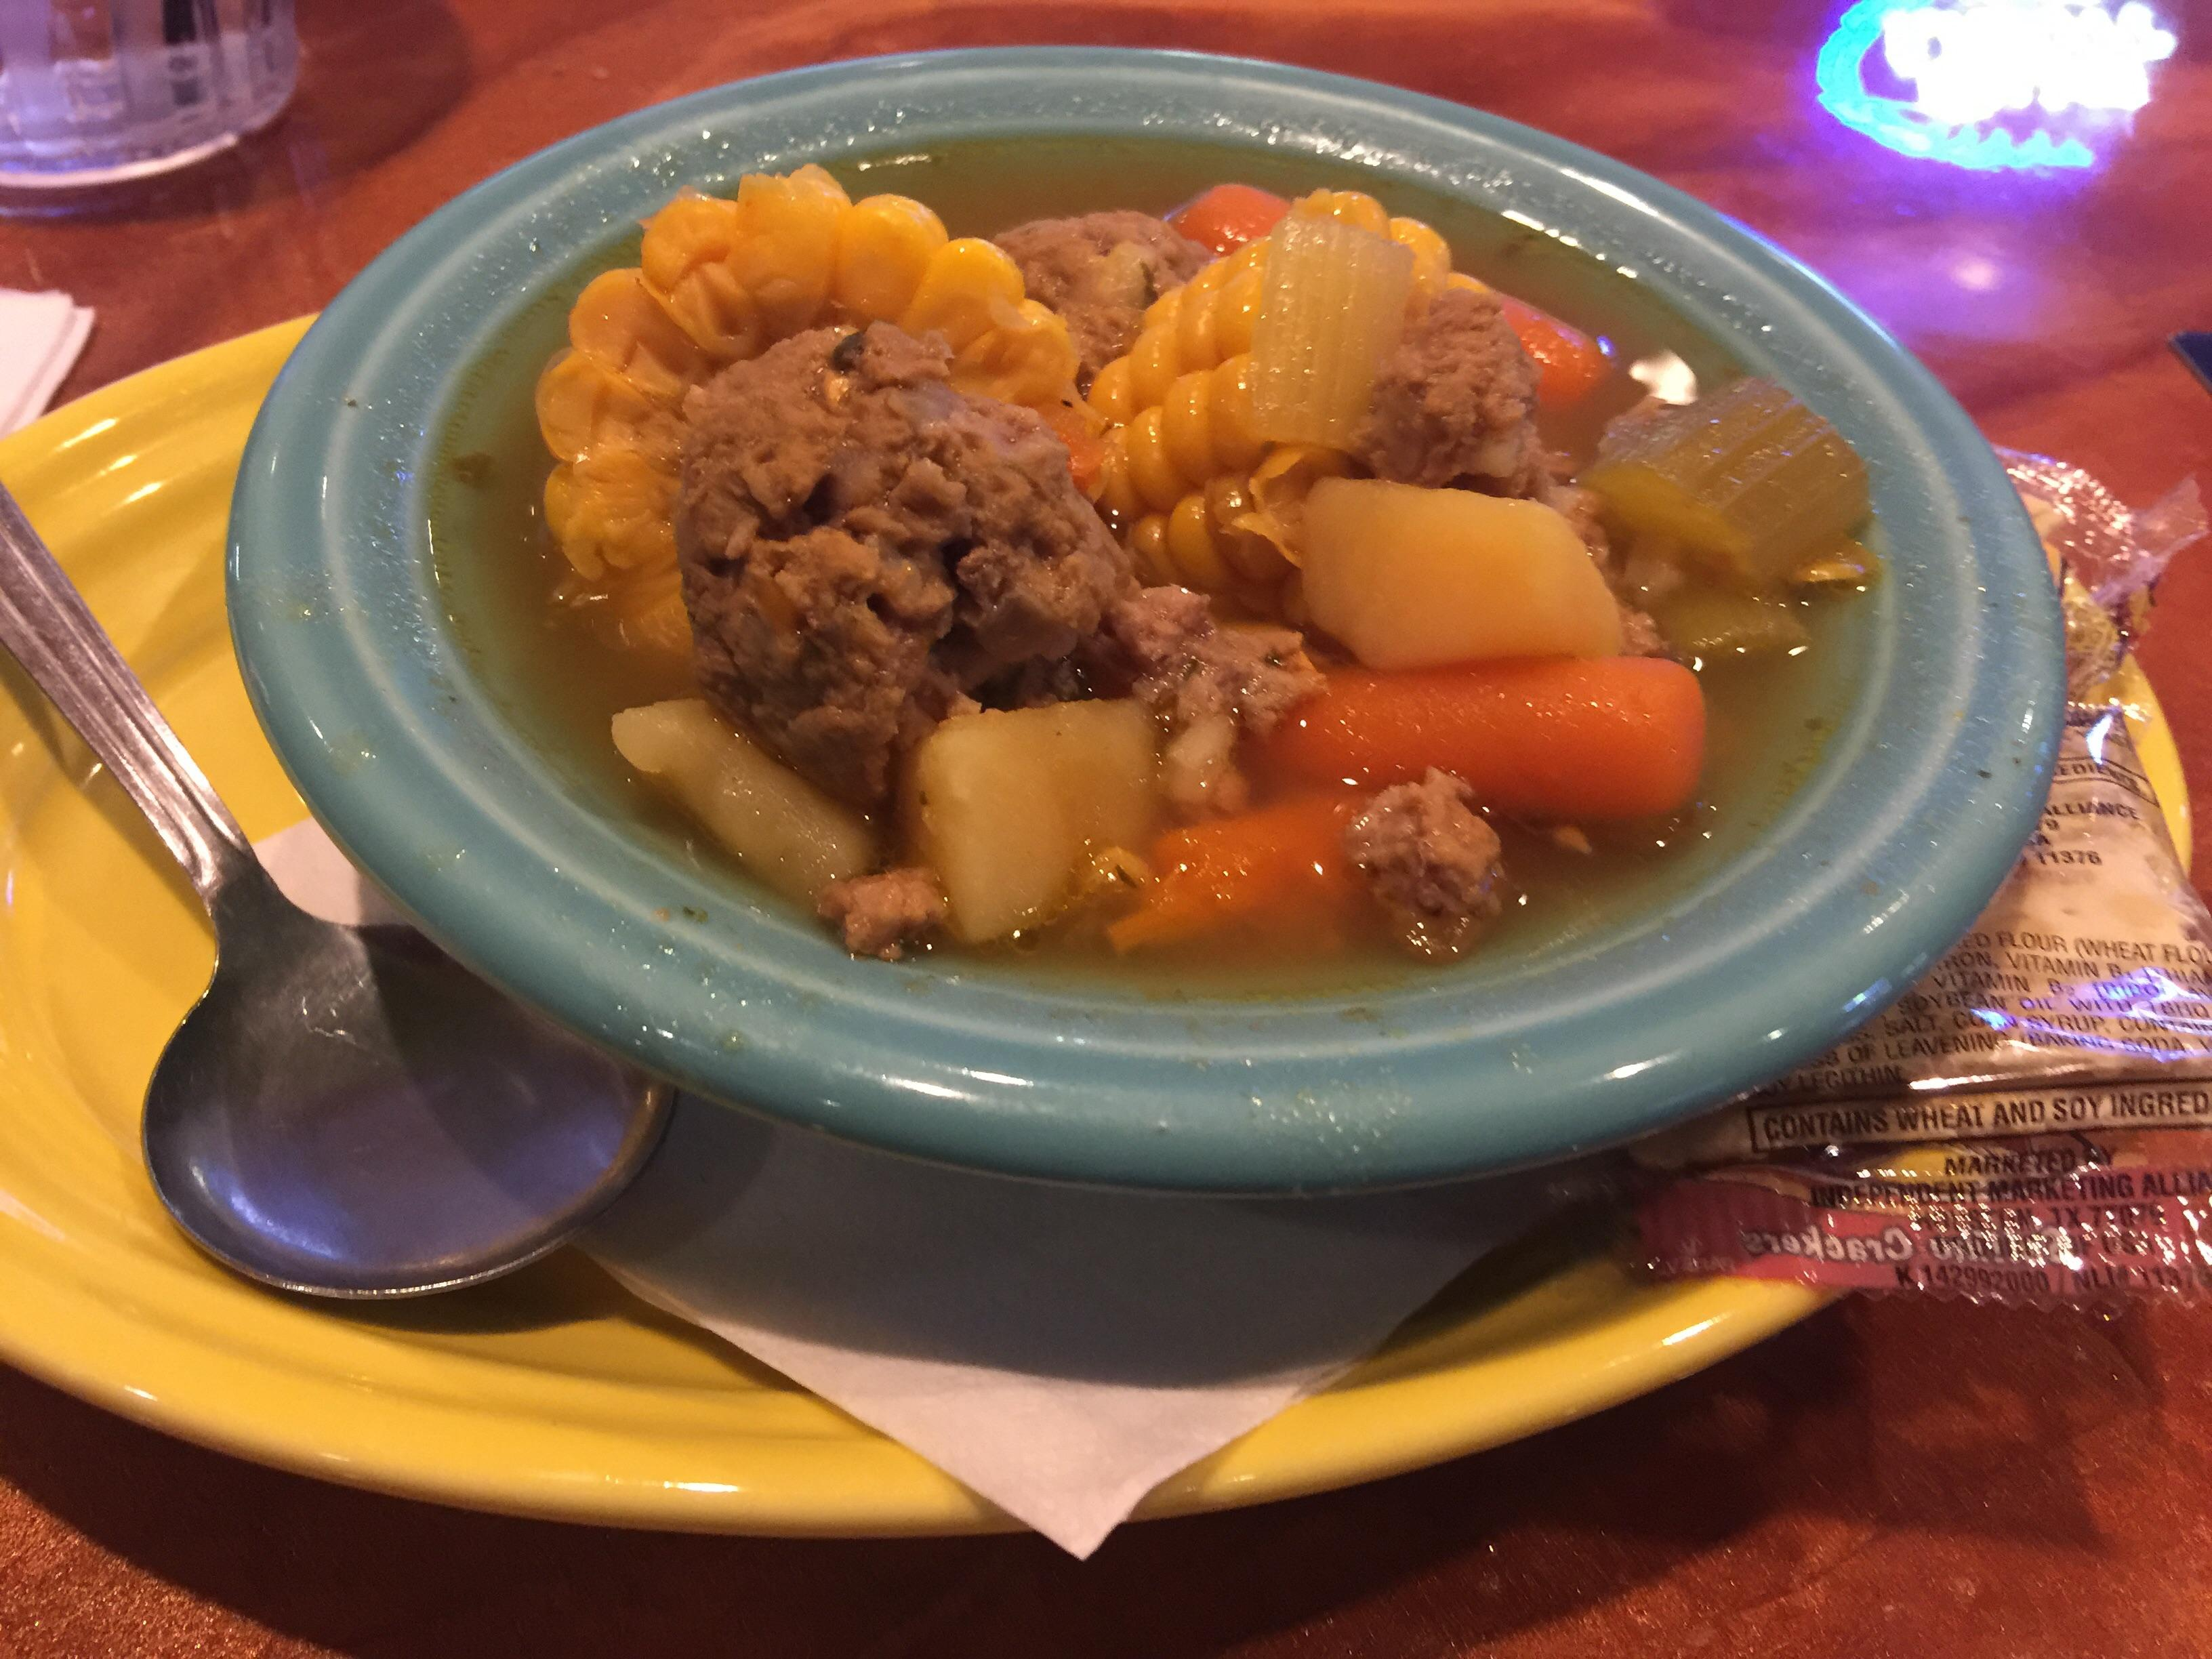 OpenNote: Angry Owl Albomdigas vegetables and meatball soup bowl $4 #food